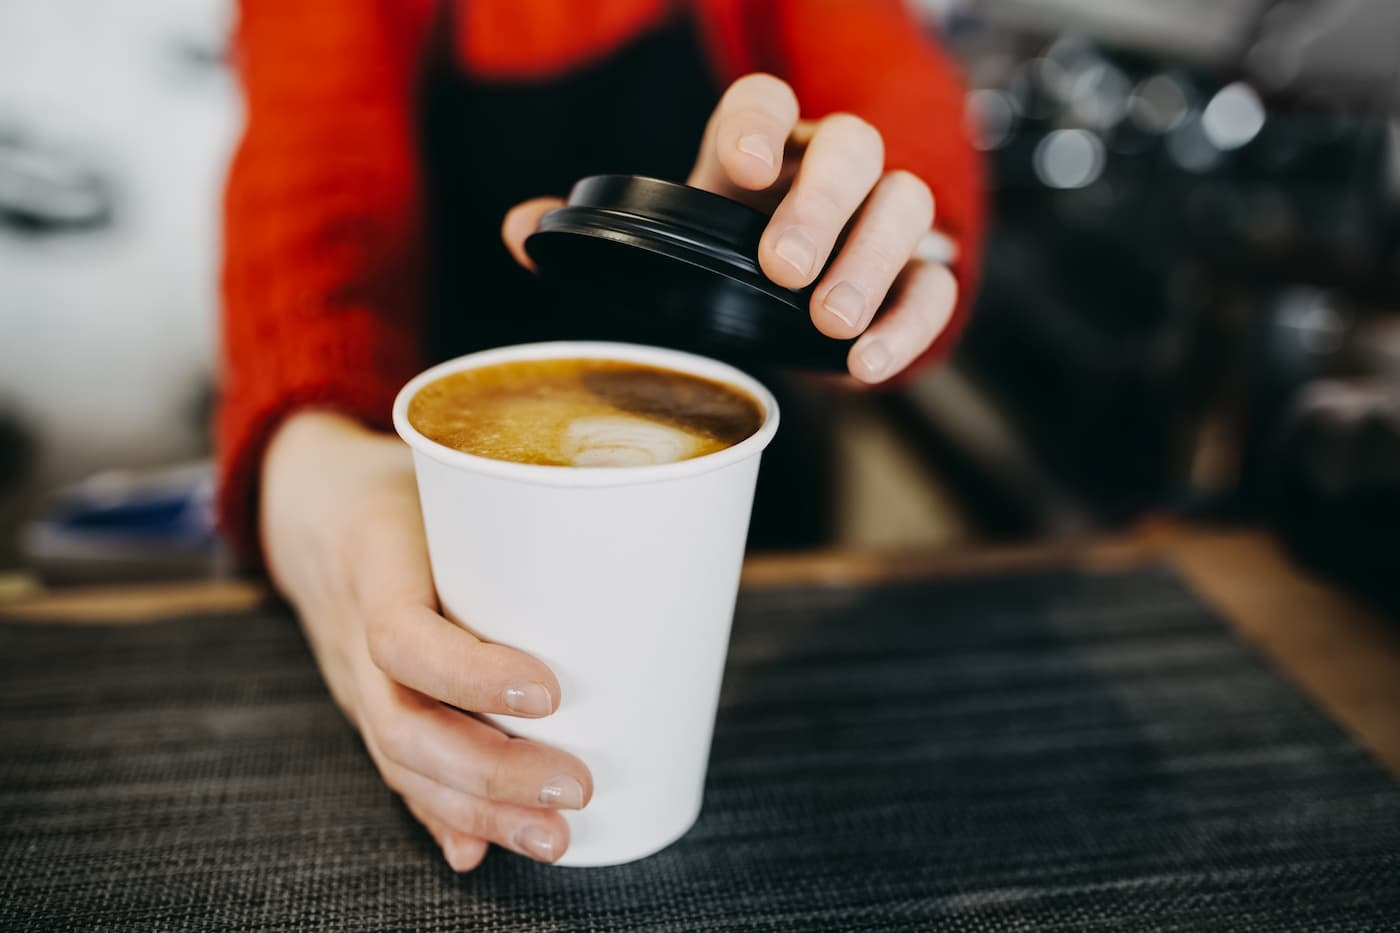 Barista putting lid on coffee cup